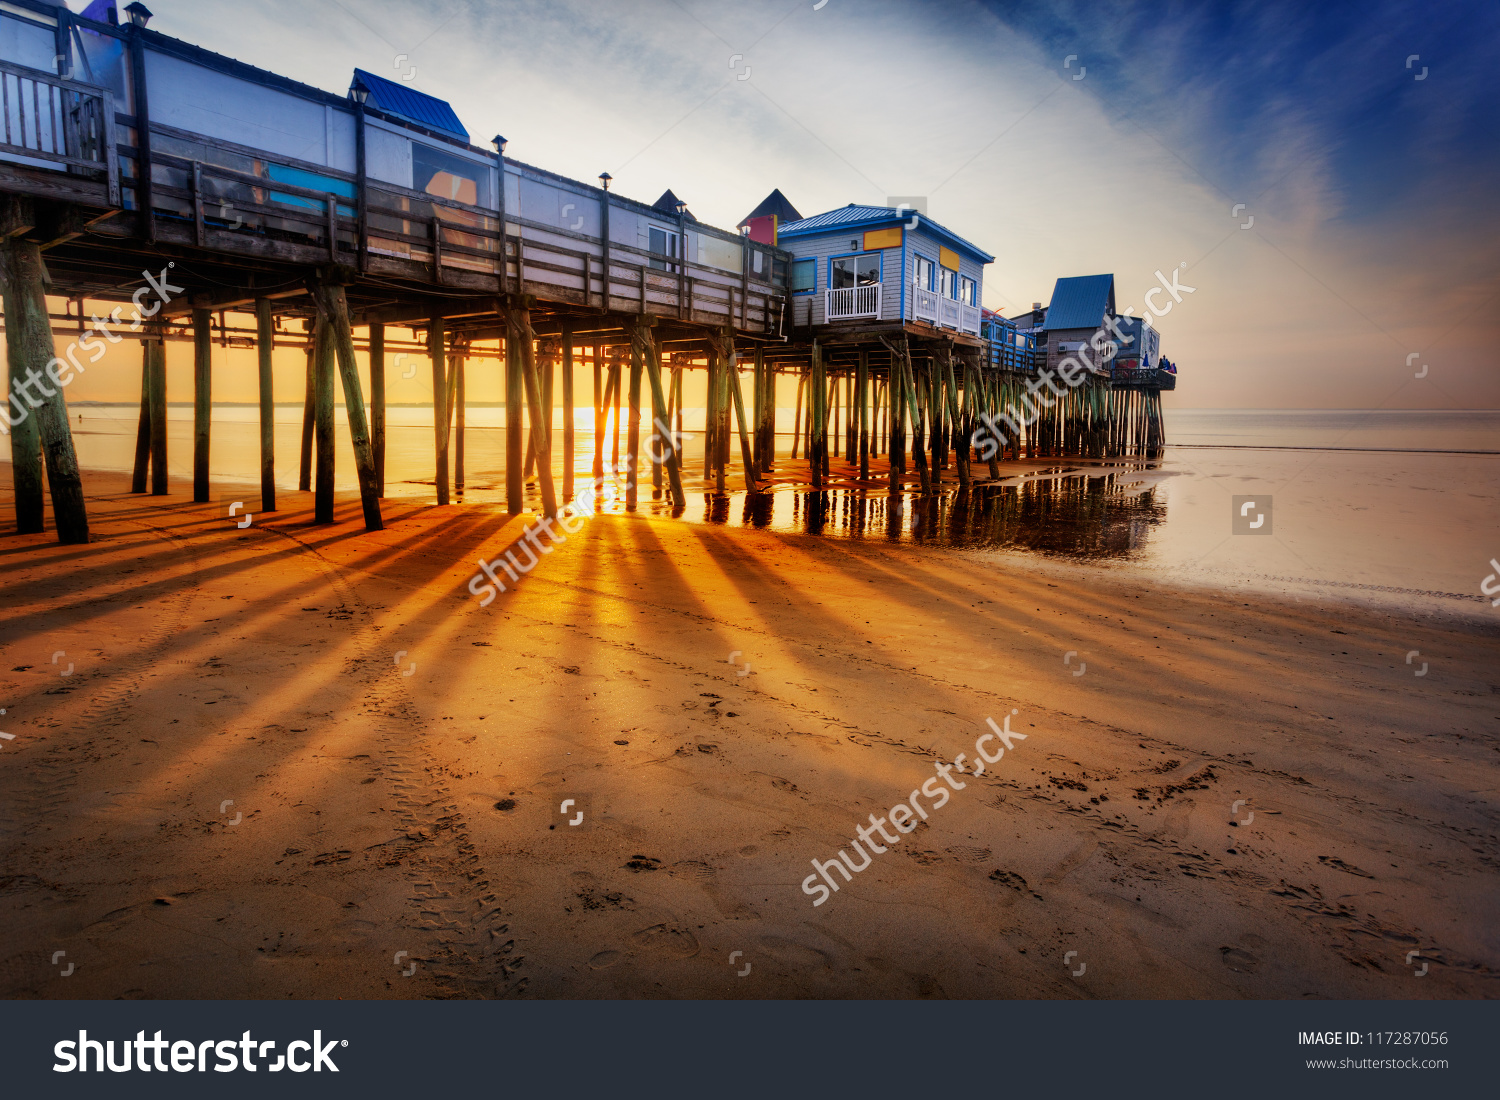 Old Orchard Beach Pier With Rays Through The Pilings At Low Tide.